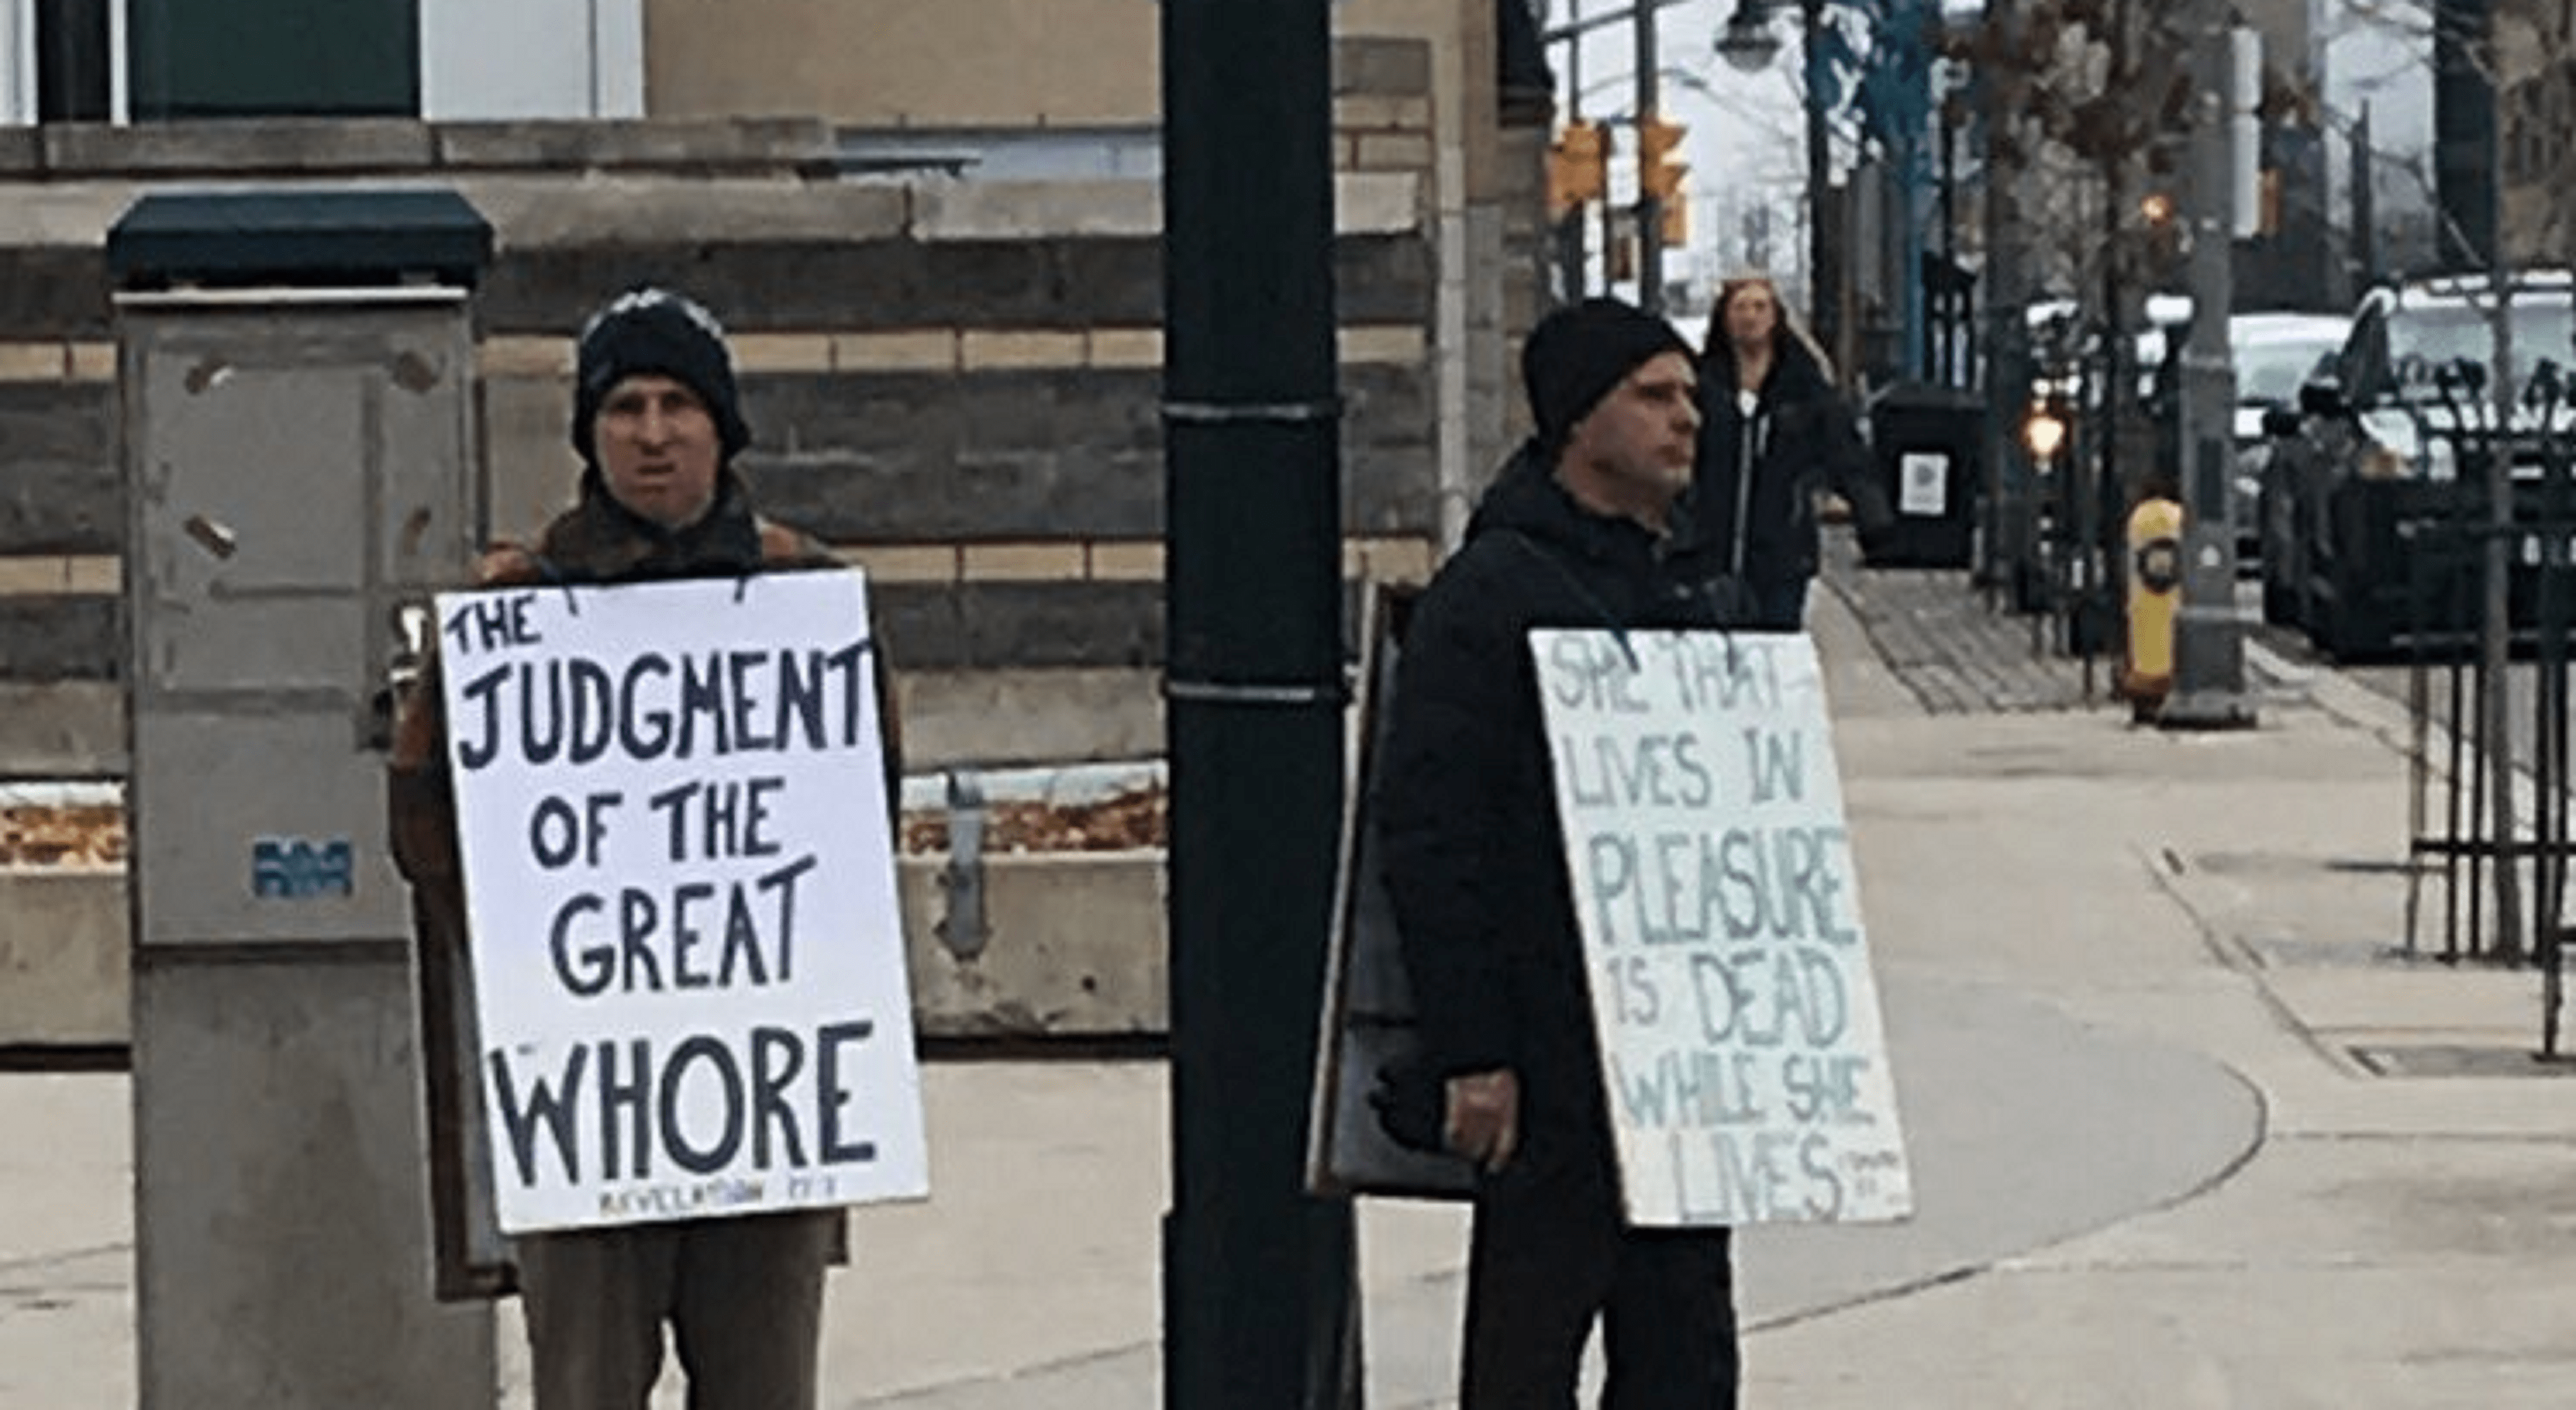 Ontario street preachers under investigation after 'inappropriate comments'